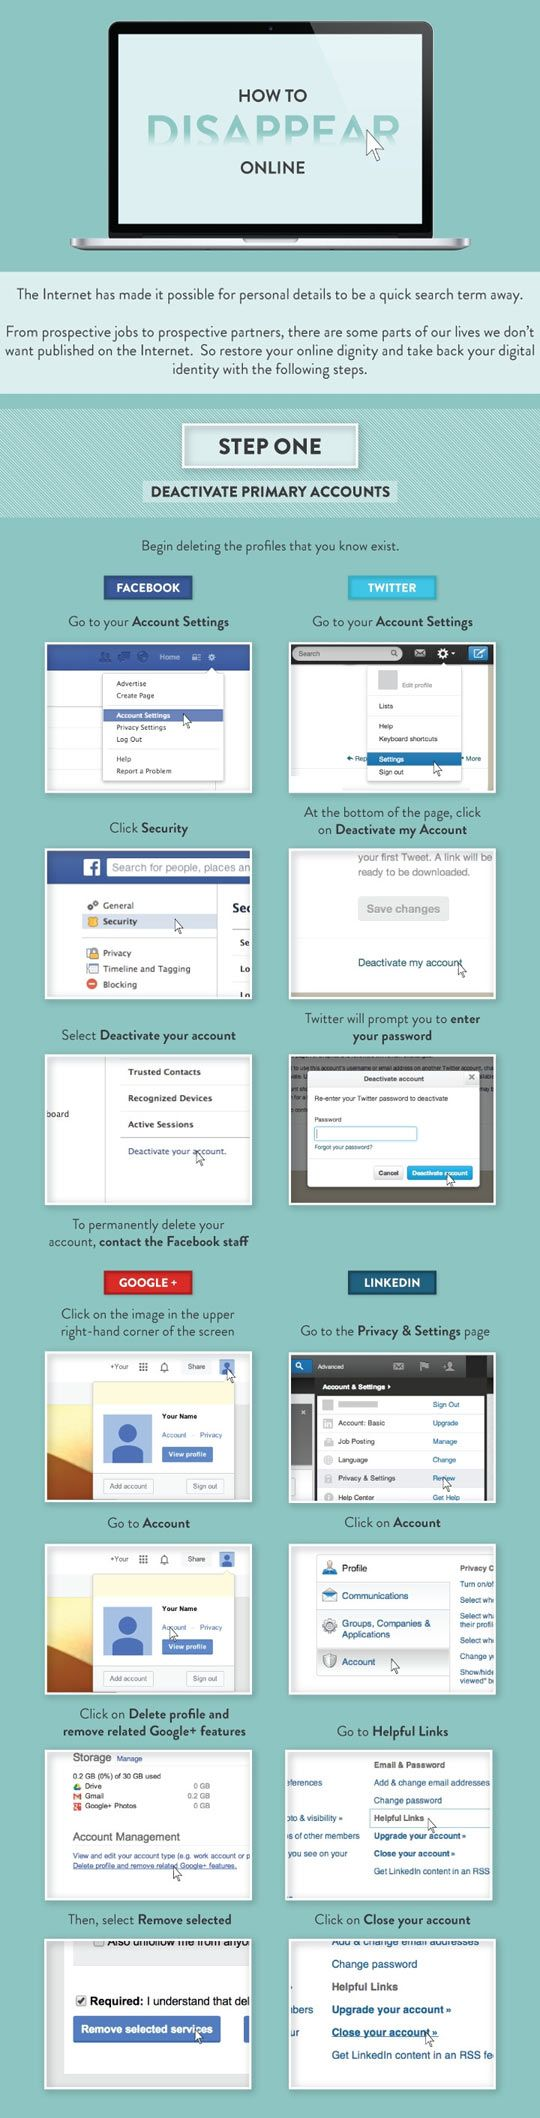 cool-infographic-disappear-online-Internet